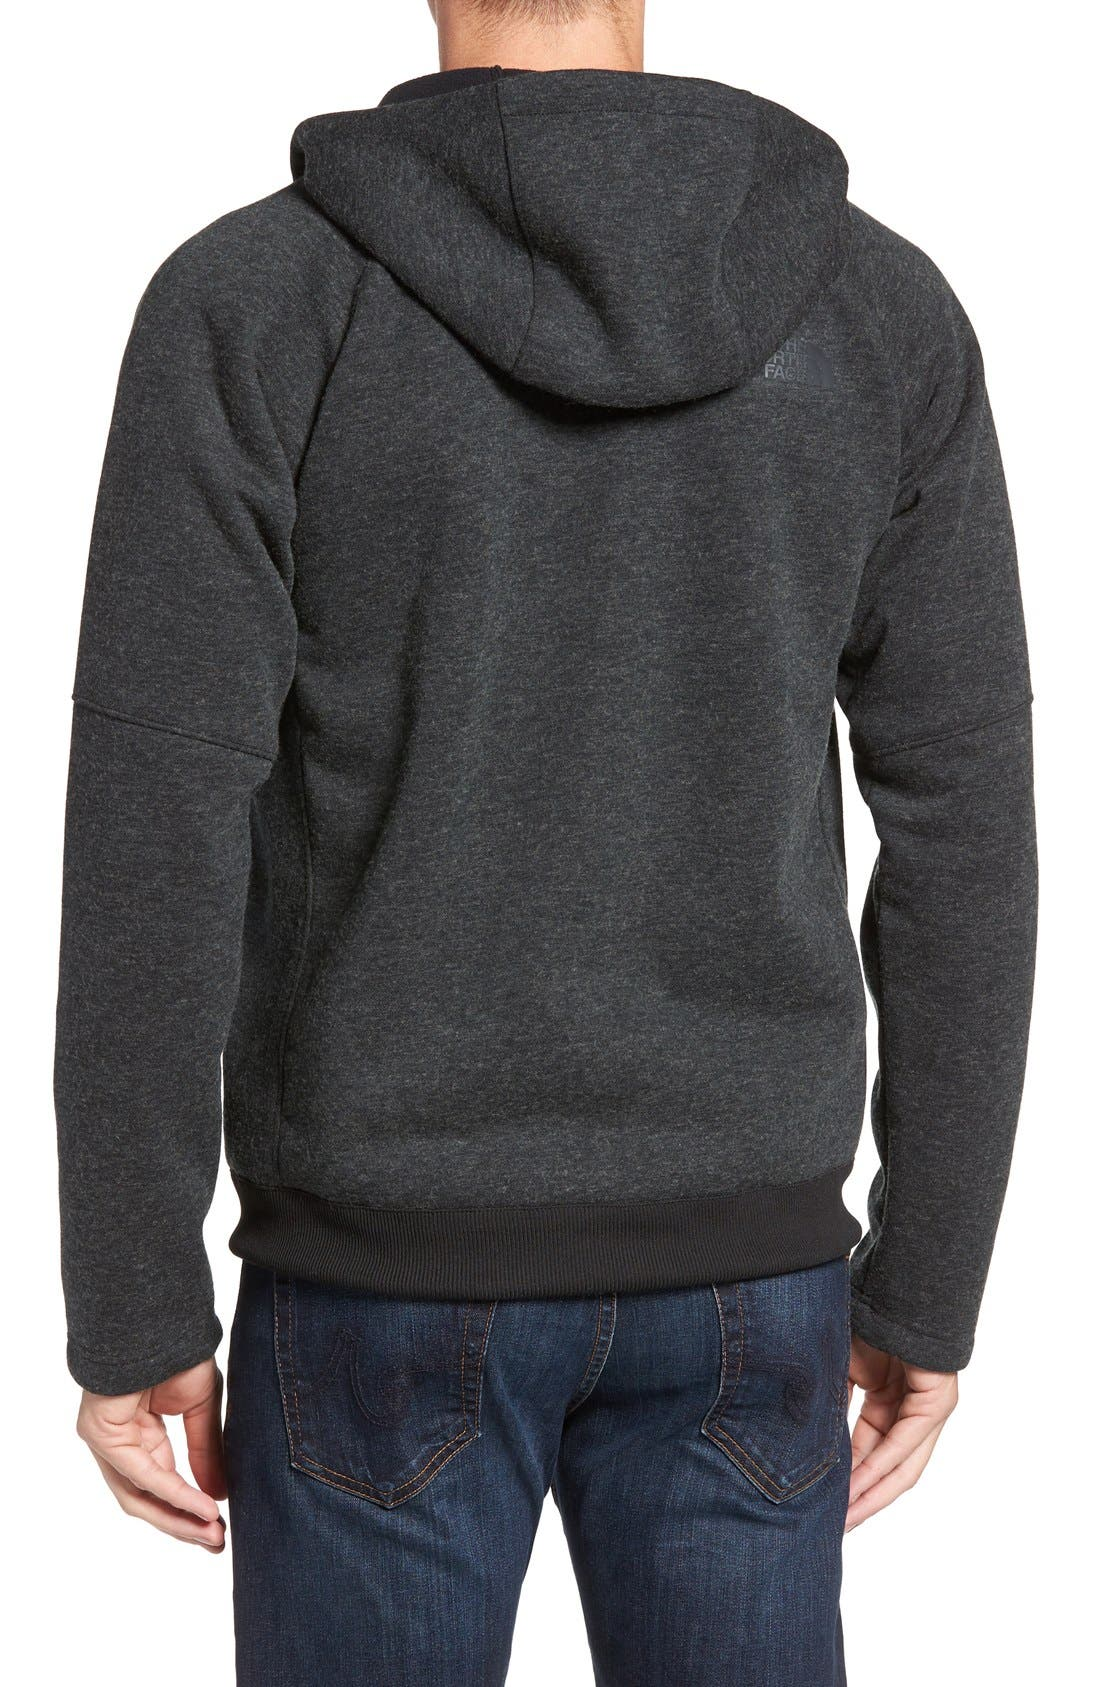 THE NORTH FACE,                             Far Northern Hoodie,                             Alternate thumbnail 2, color,                             001